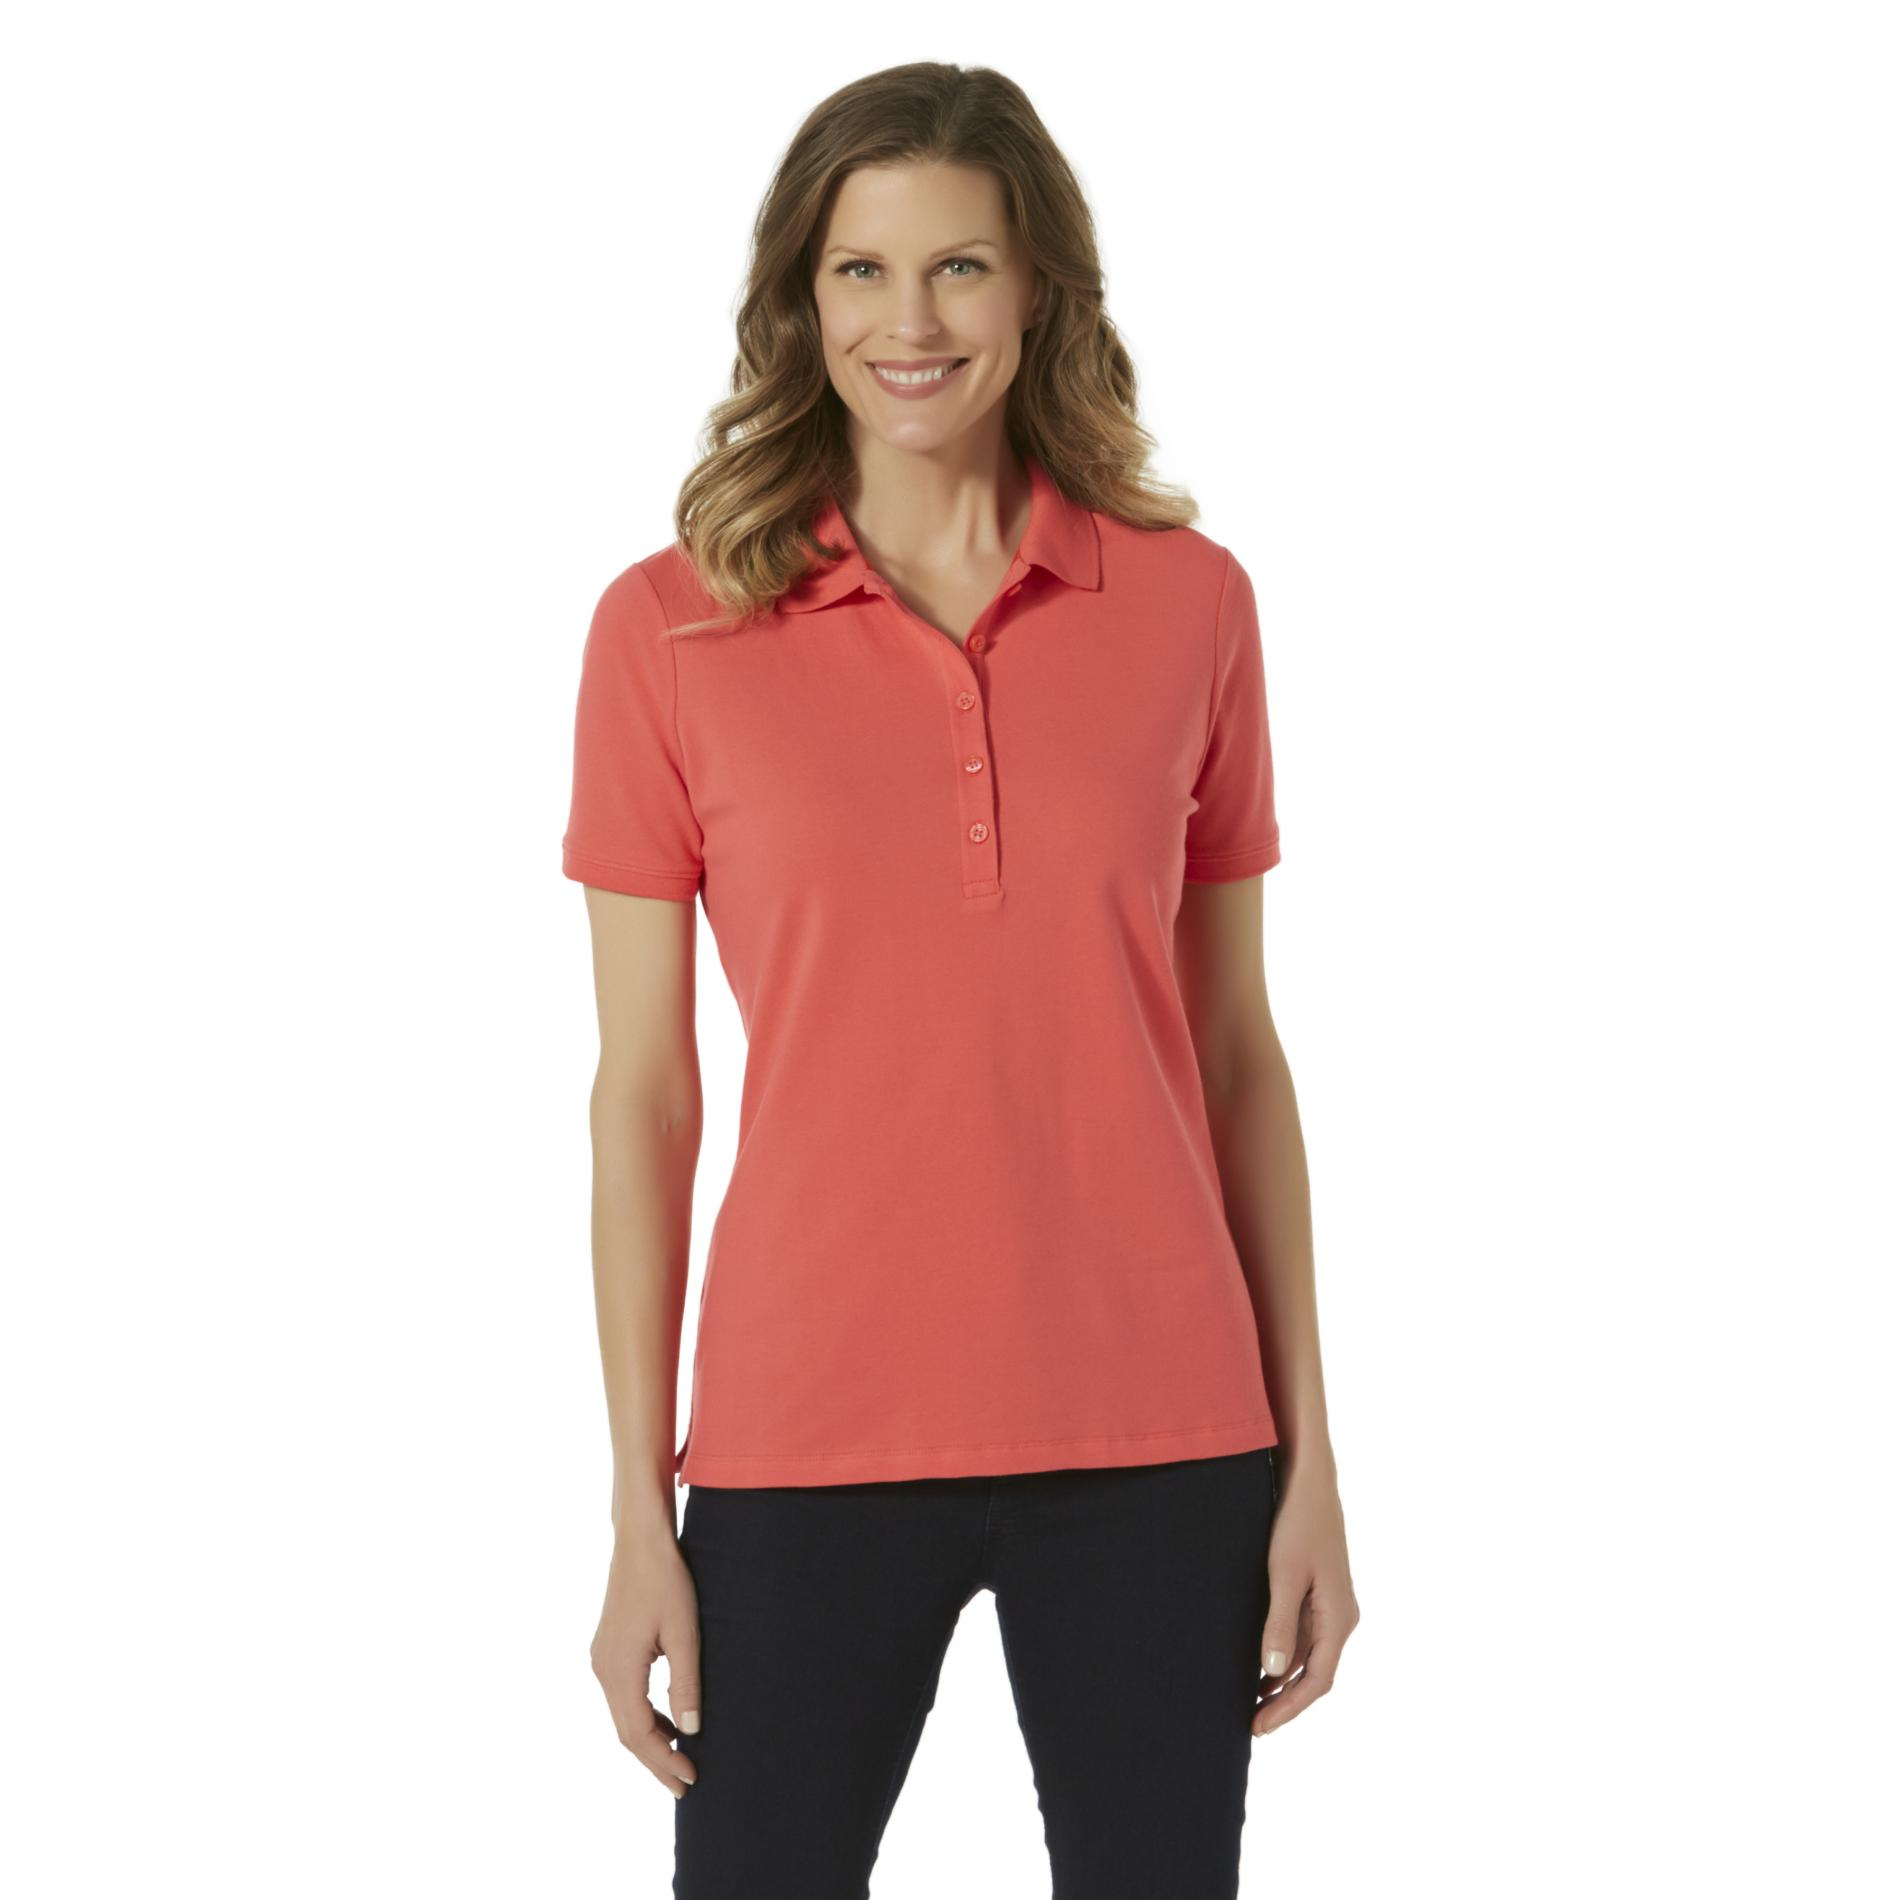 Polo Shirts For Women: Ideal For Formal And Casual Wear